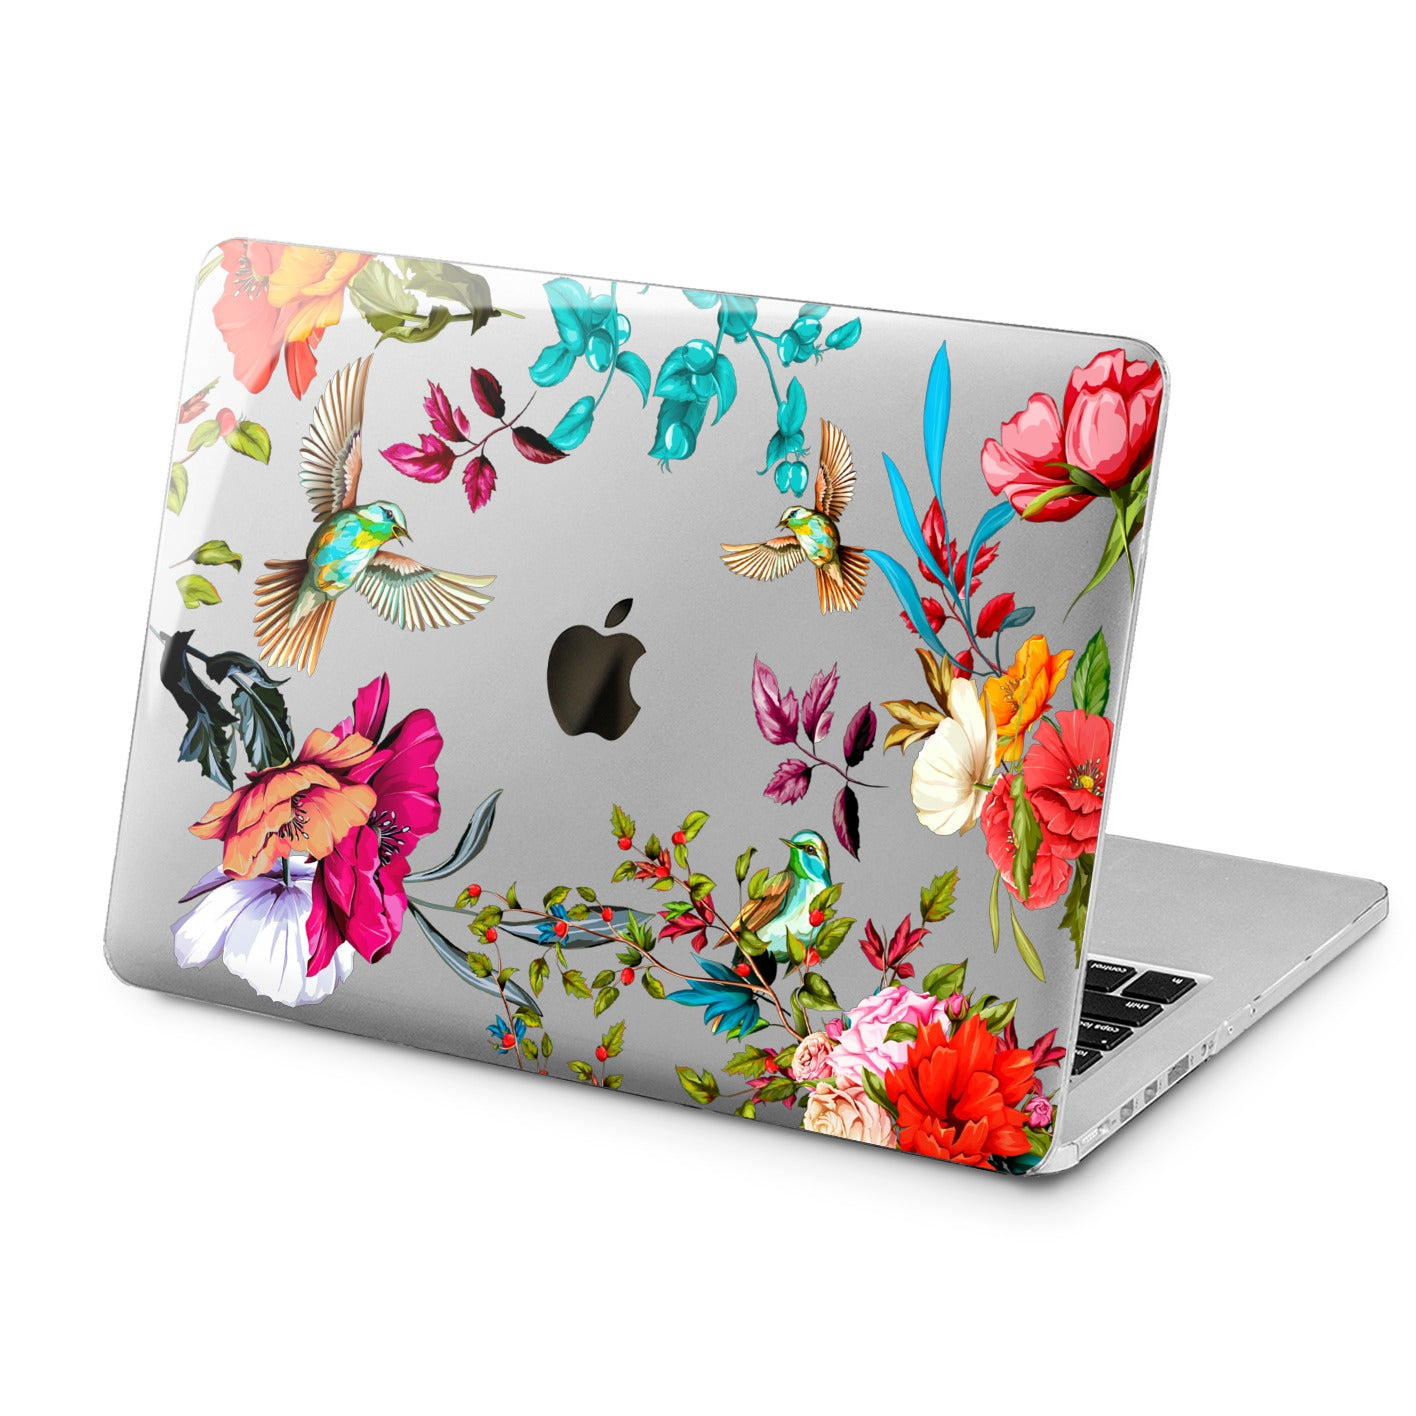 Lex Altern Lex Altern Floral Birds Case for your Laptop Apple Macbook.